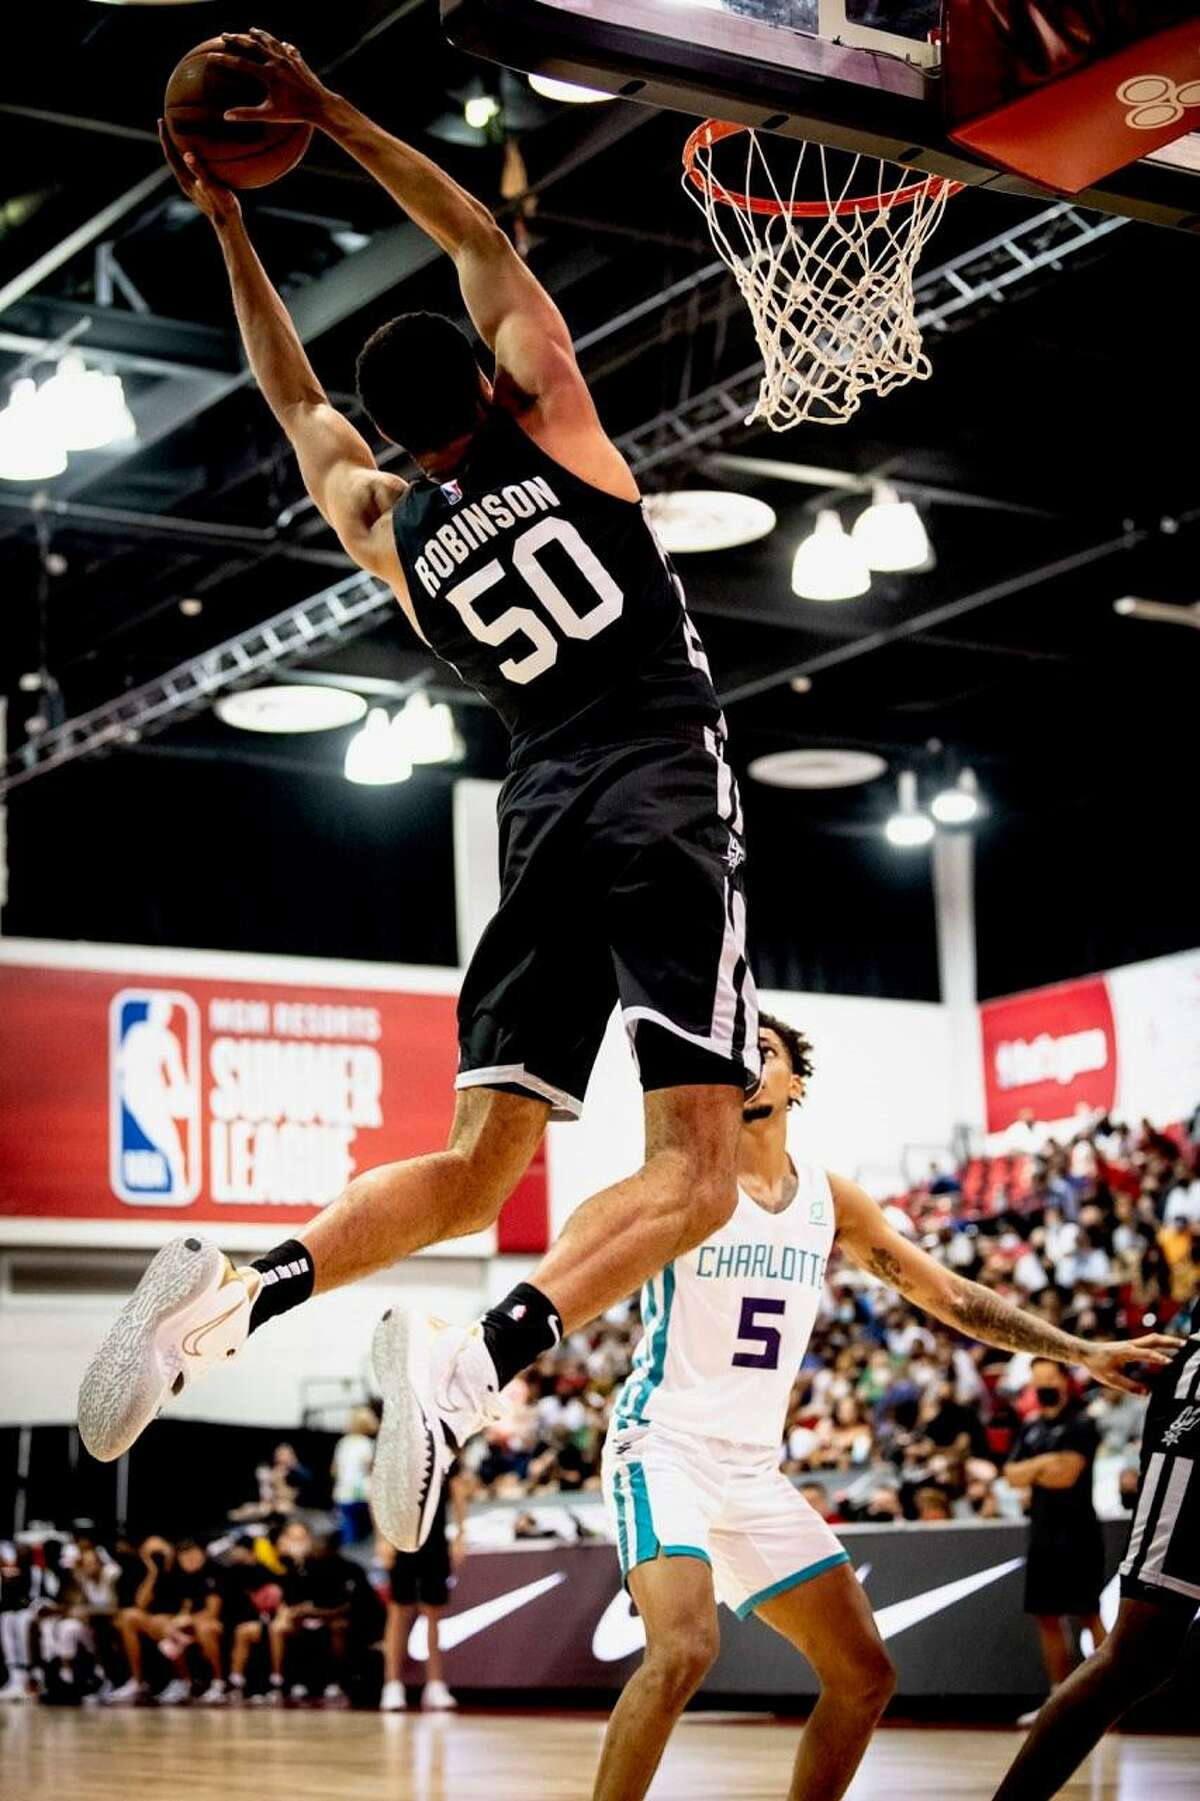 Spurs great David Robinson and his son Justin enjoyed an 'amazing' time at Summer League.